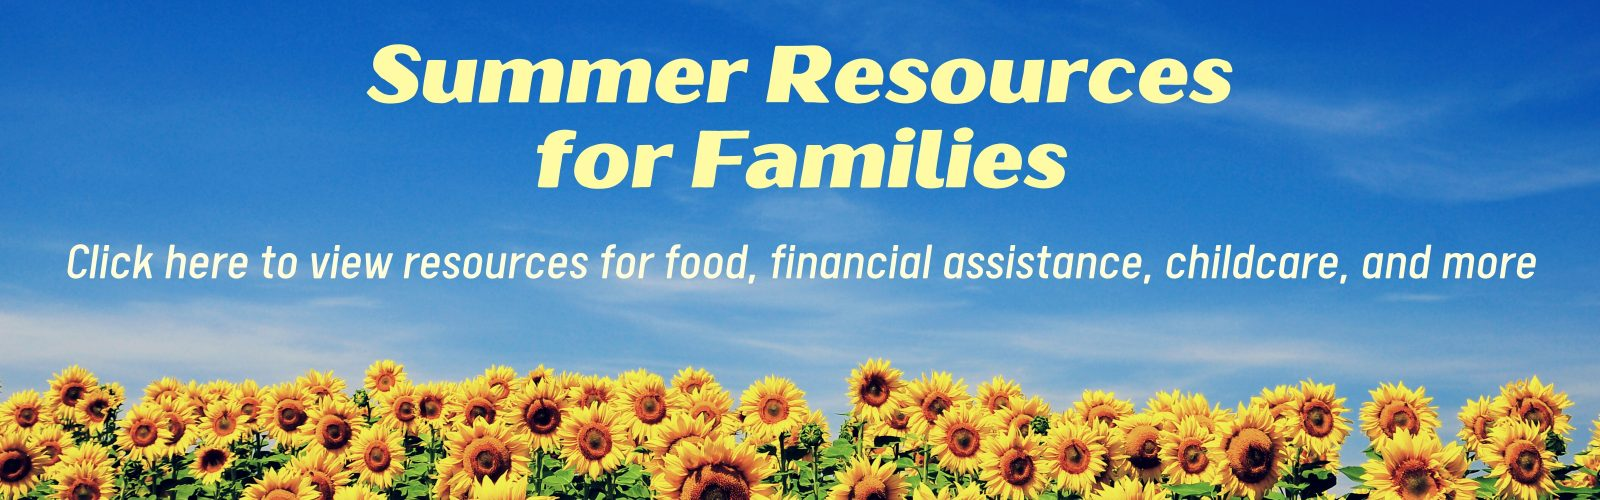 Click here to view Summer Resources for Families